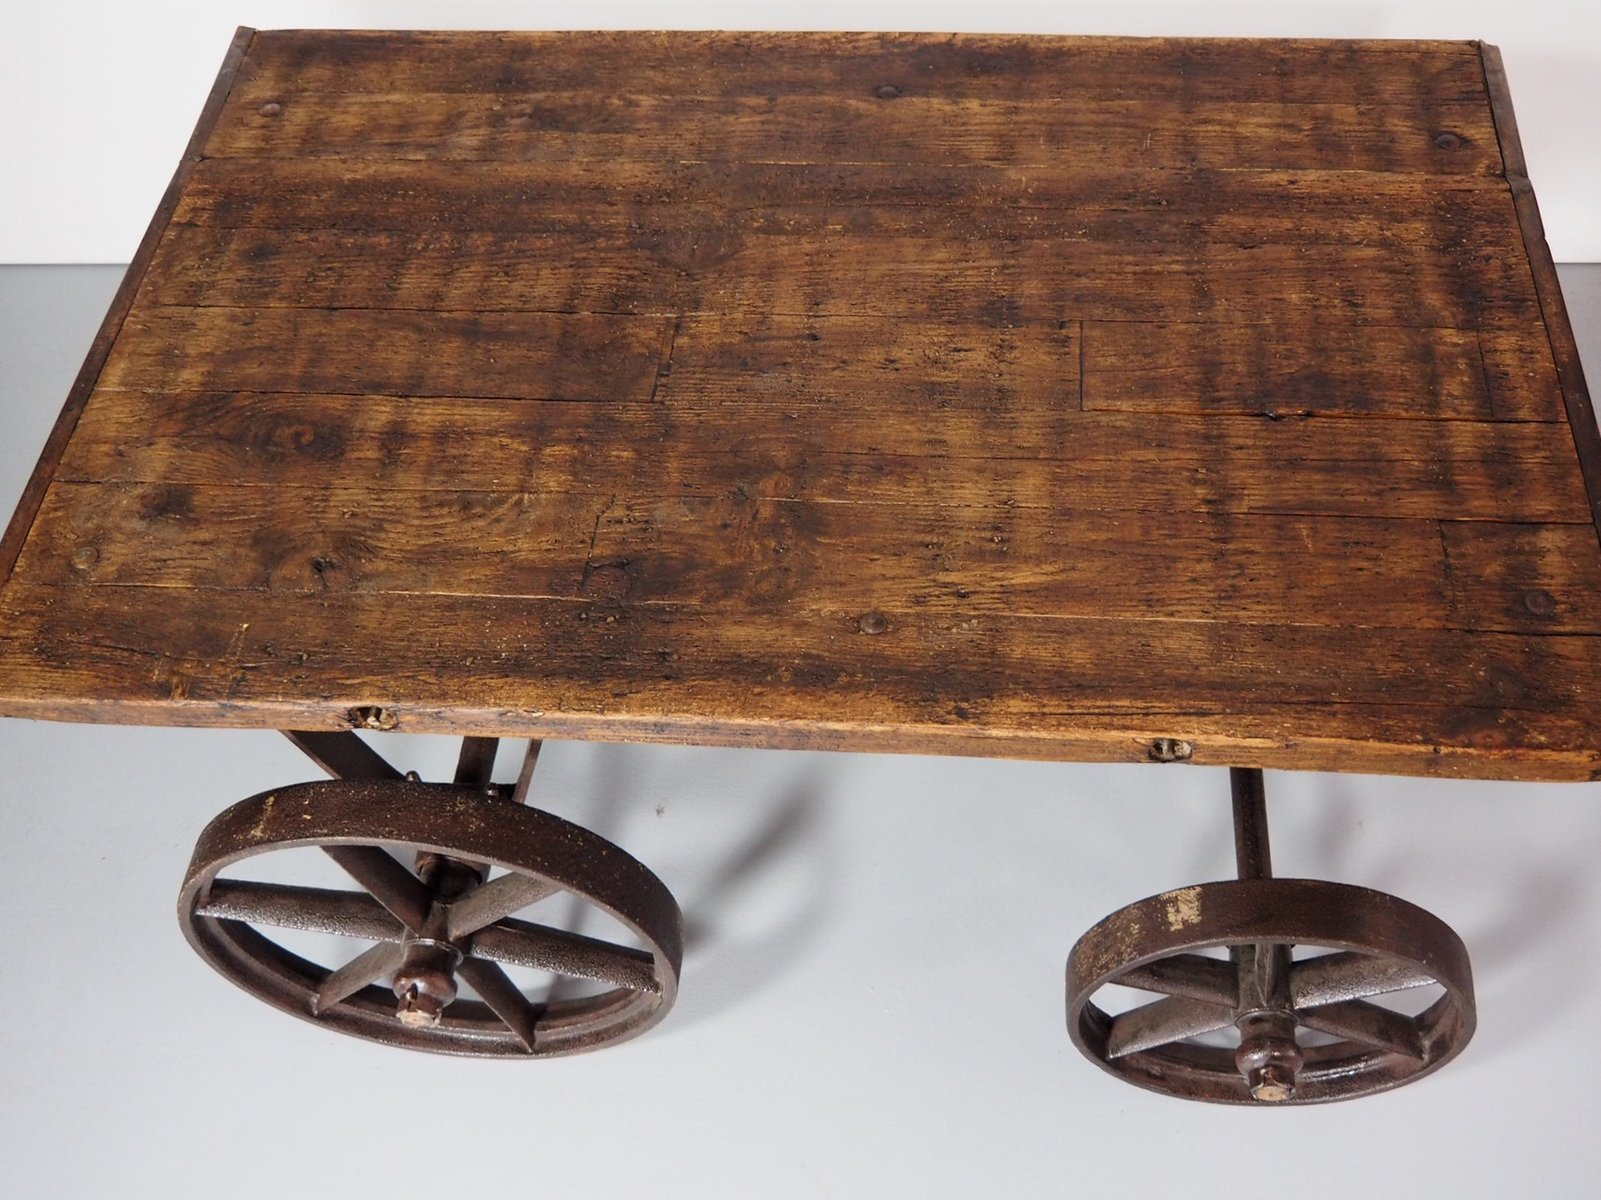 Vintage Industrial Iron Amp Wood Coffee Table For Sale At Pamono